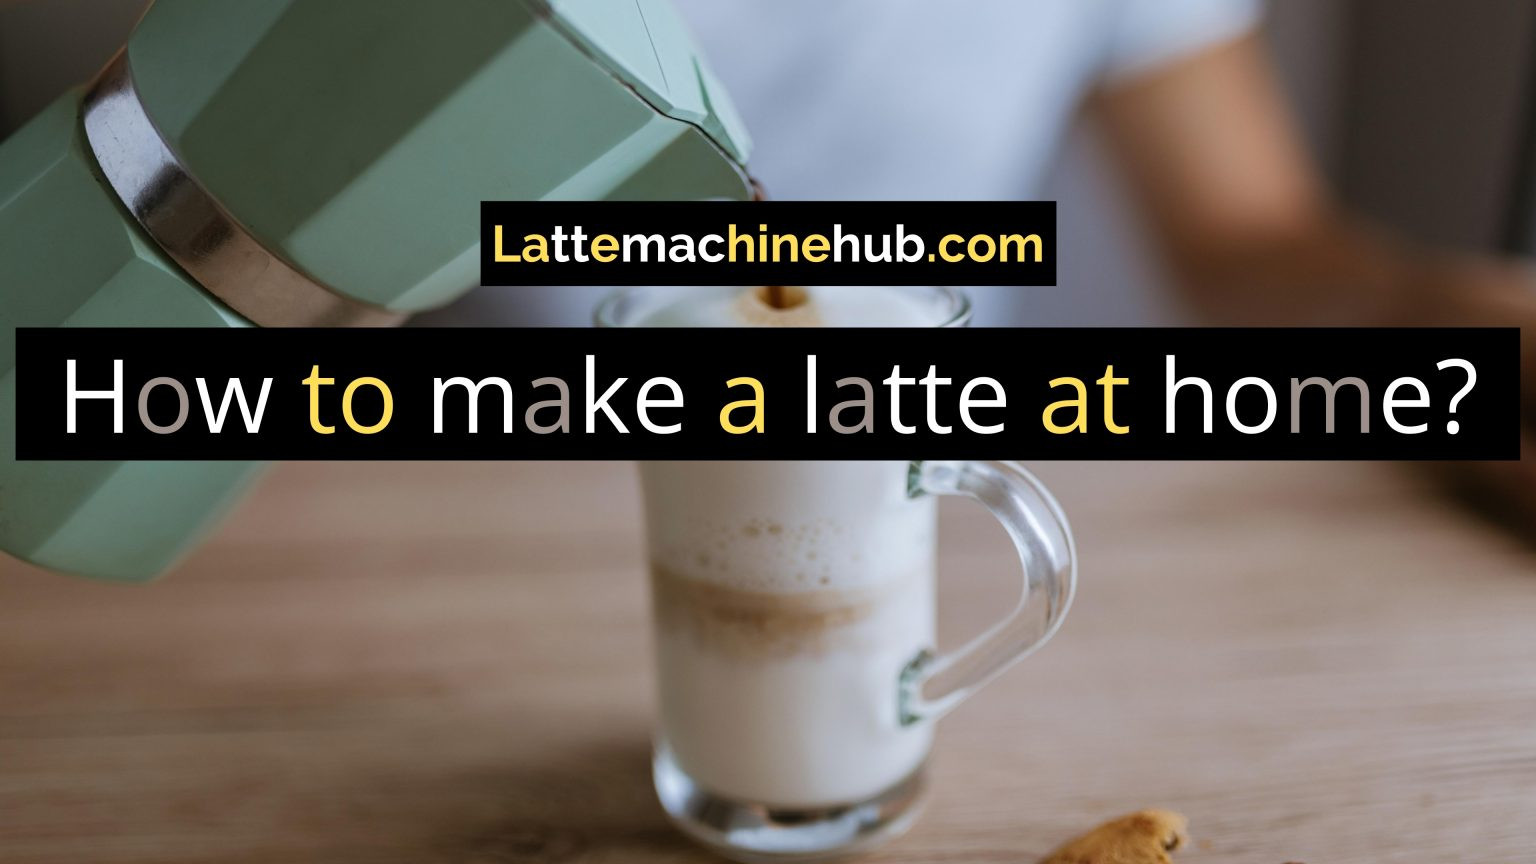 How to make a latte at home?